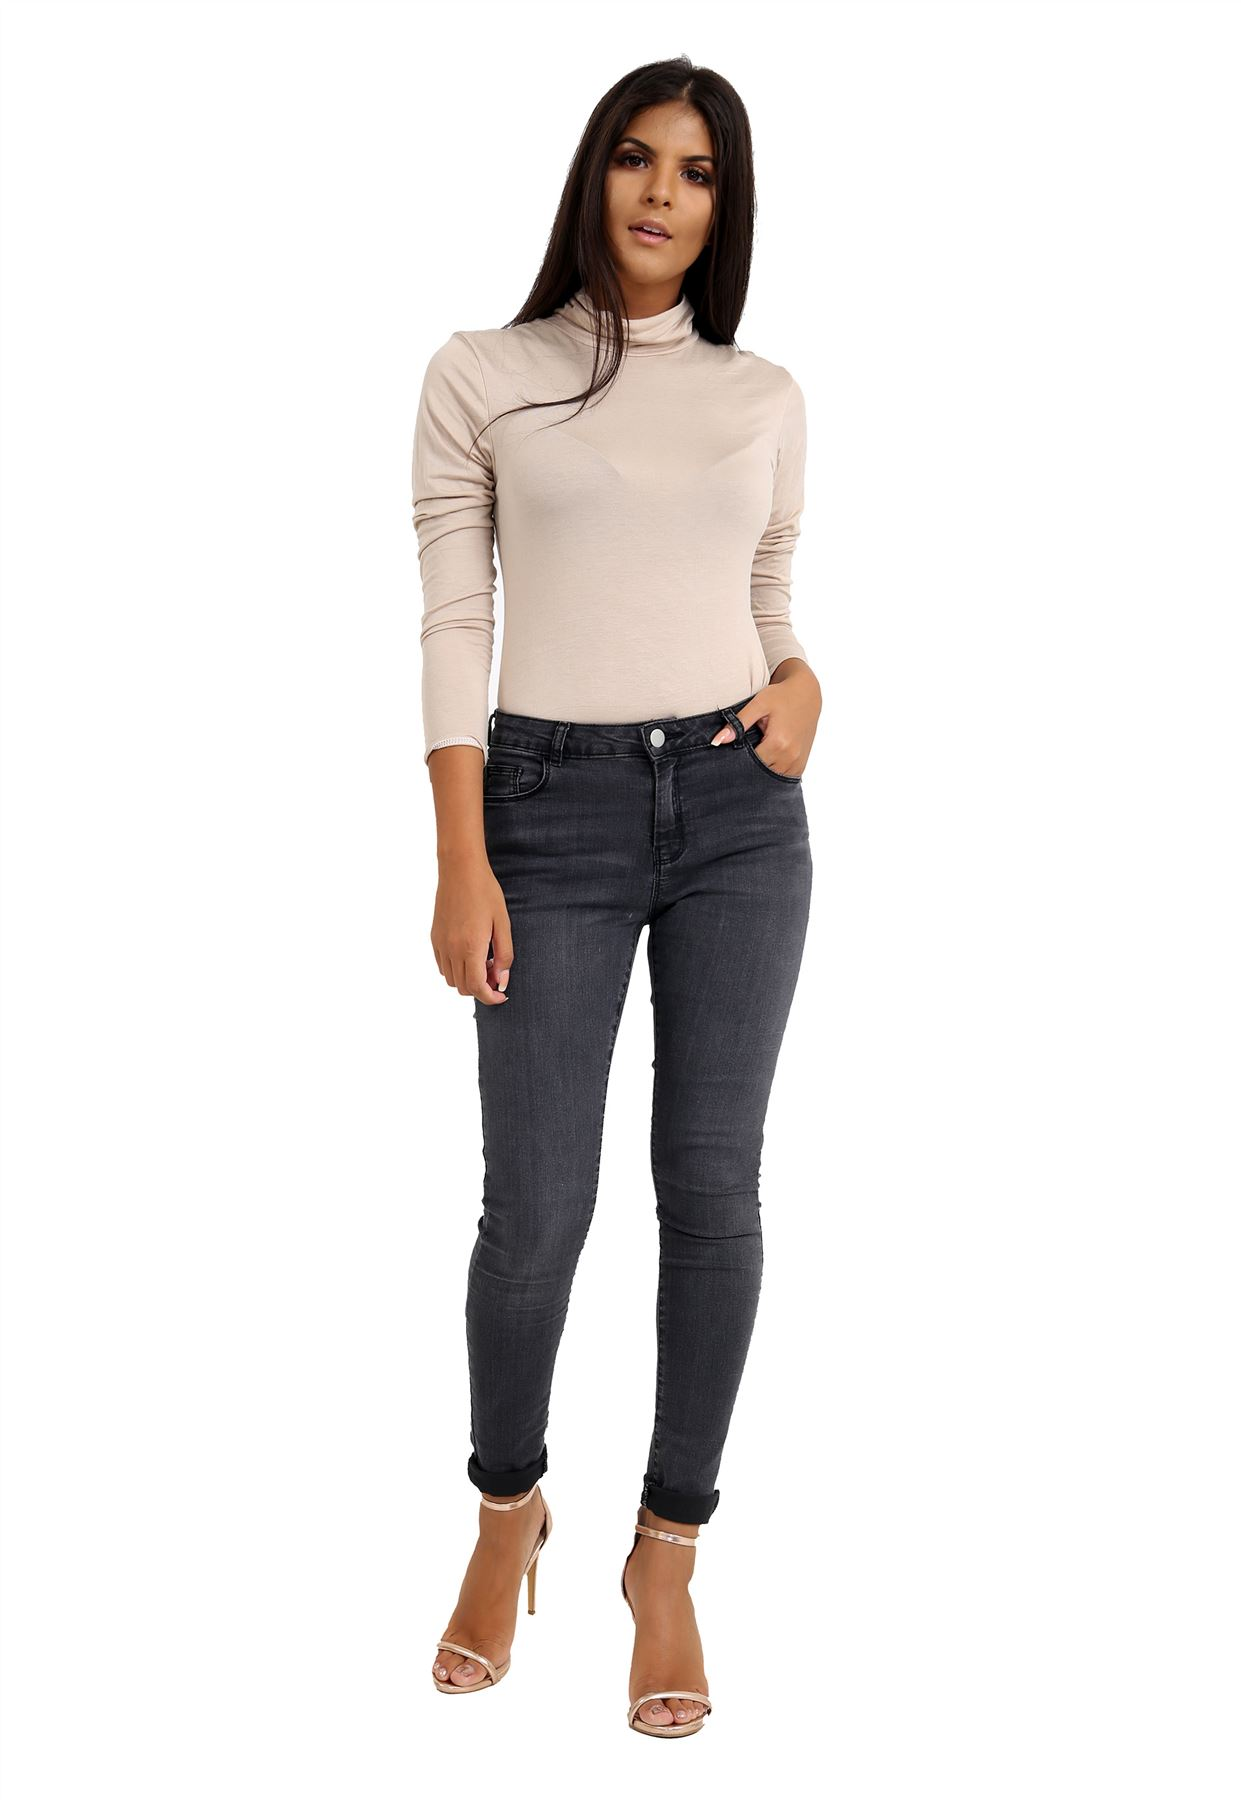 New-Ladies-Long-Sleeve-Plain-Turtle-Polo-Roll-Neck-Stretch-Jumper-T-Shirt-TeeTop thumbnail 109